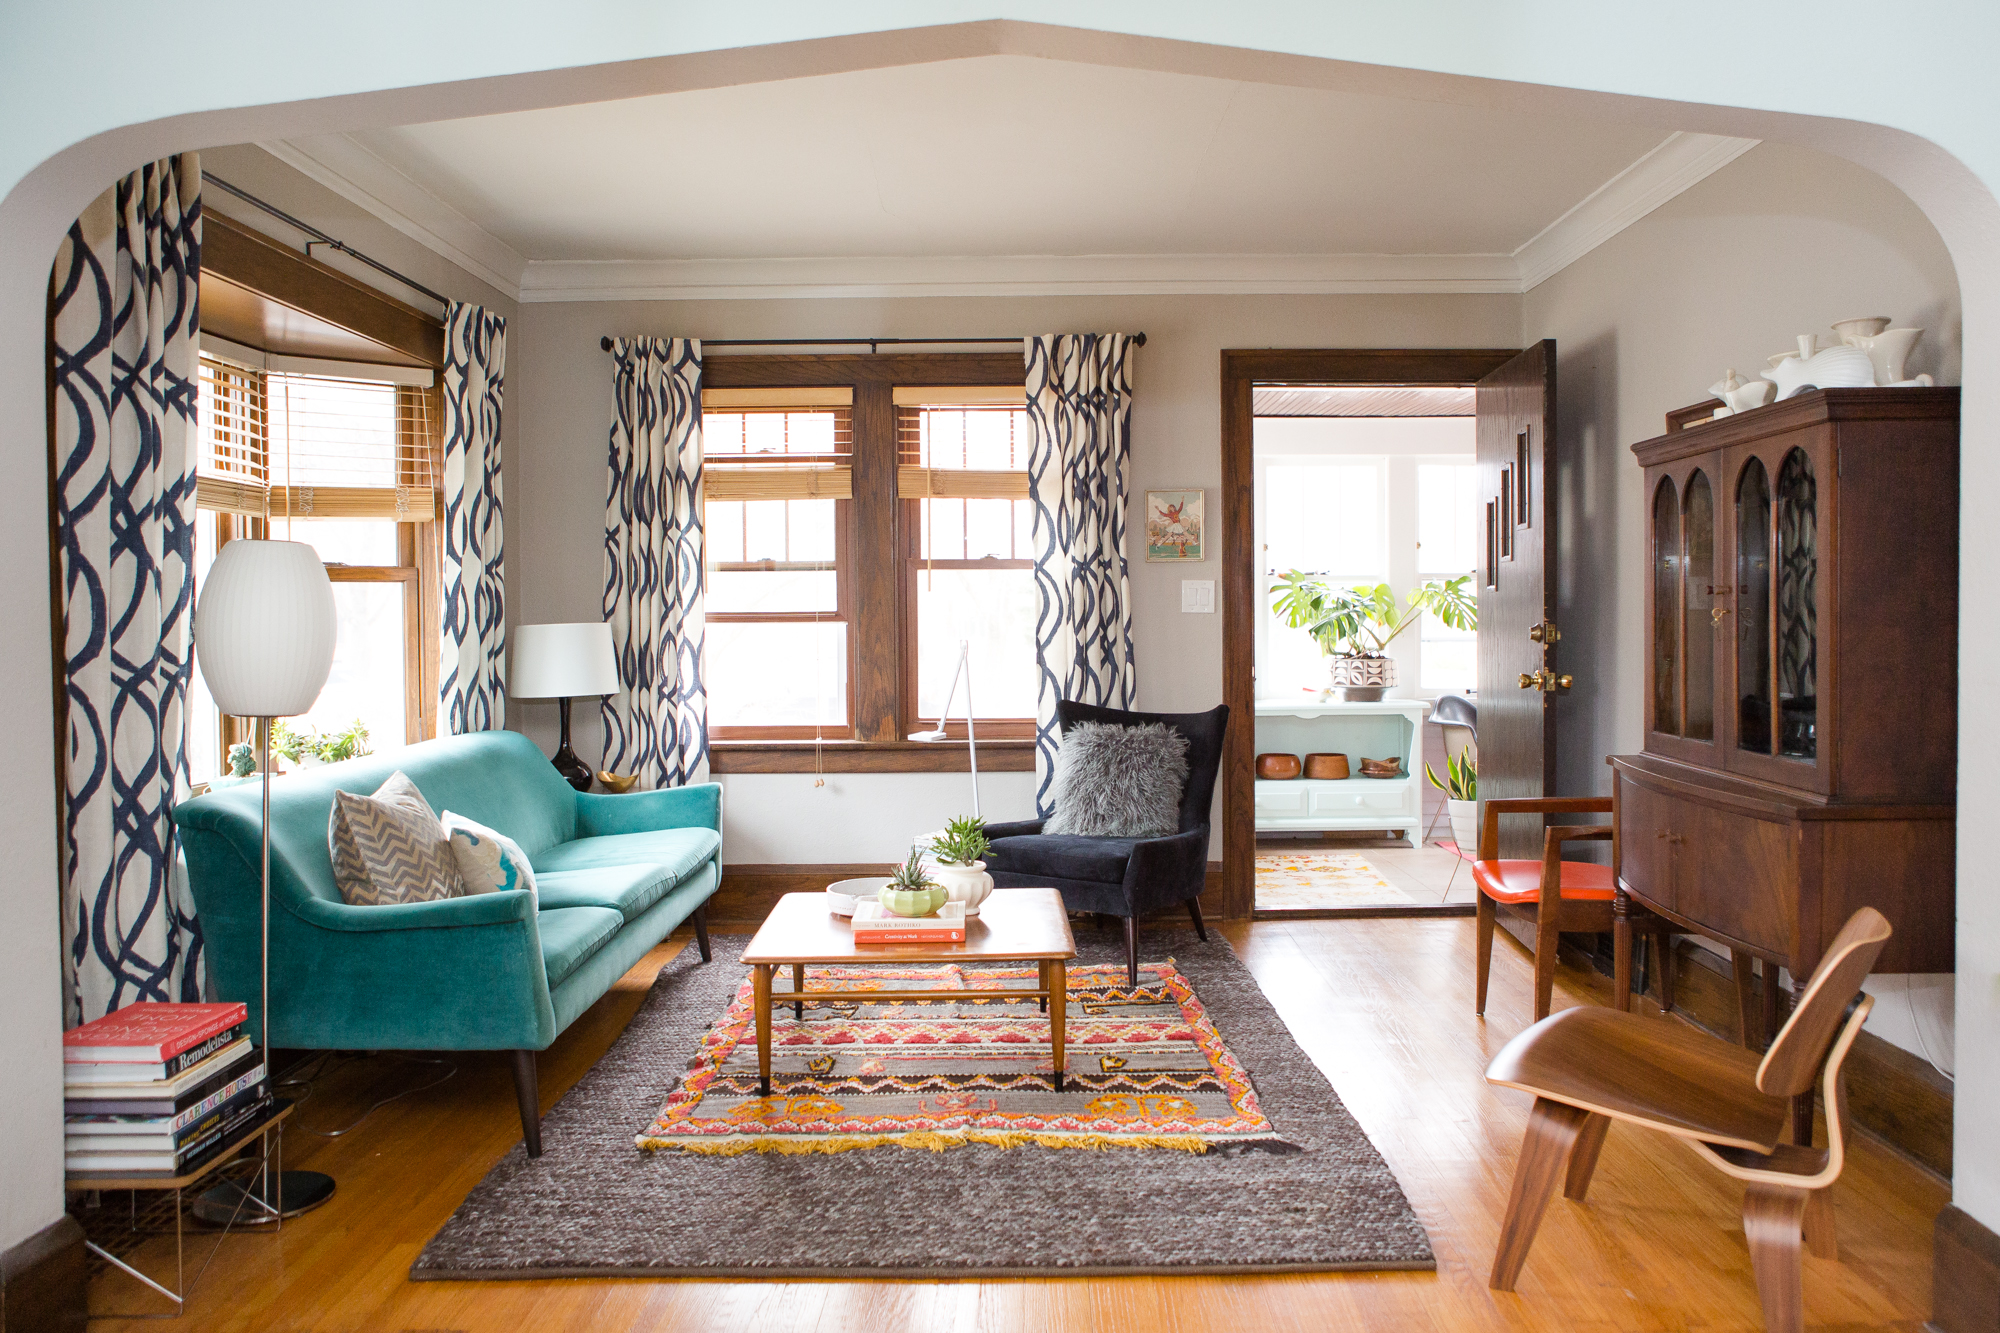 house calls a weaver 39 s small but vivacious bungalow in st paul curbed. Black Bedroom Furniture Sets. Home Design Ideas